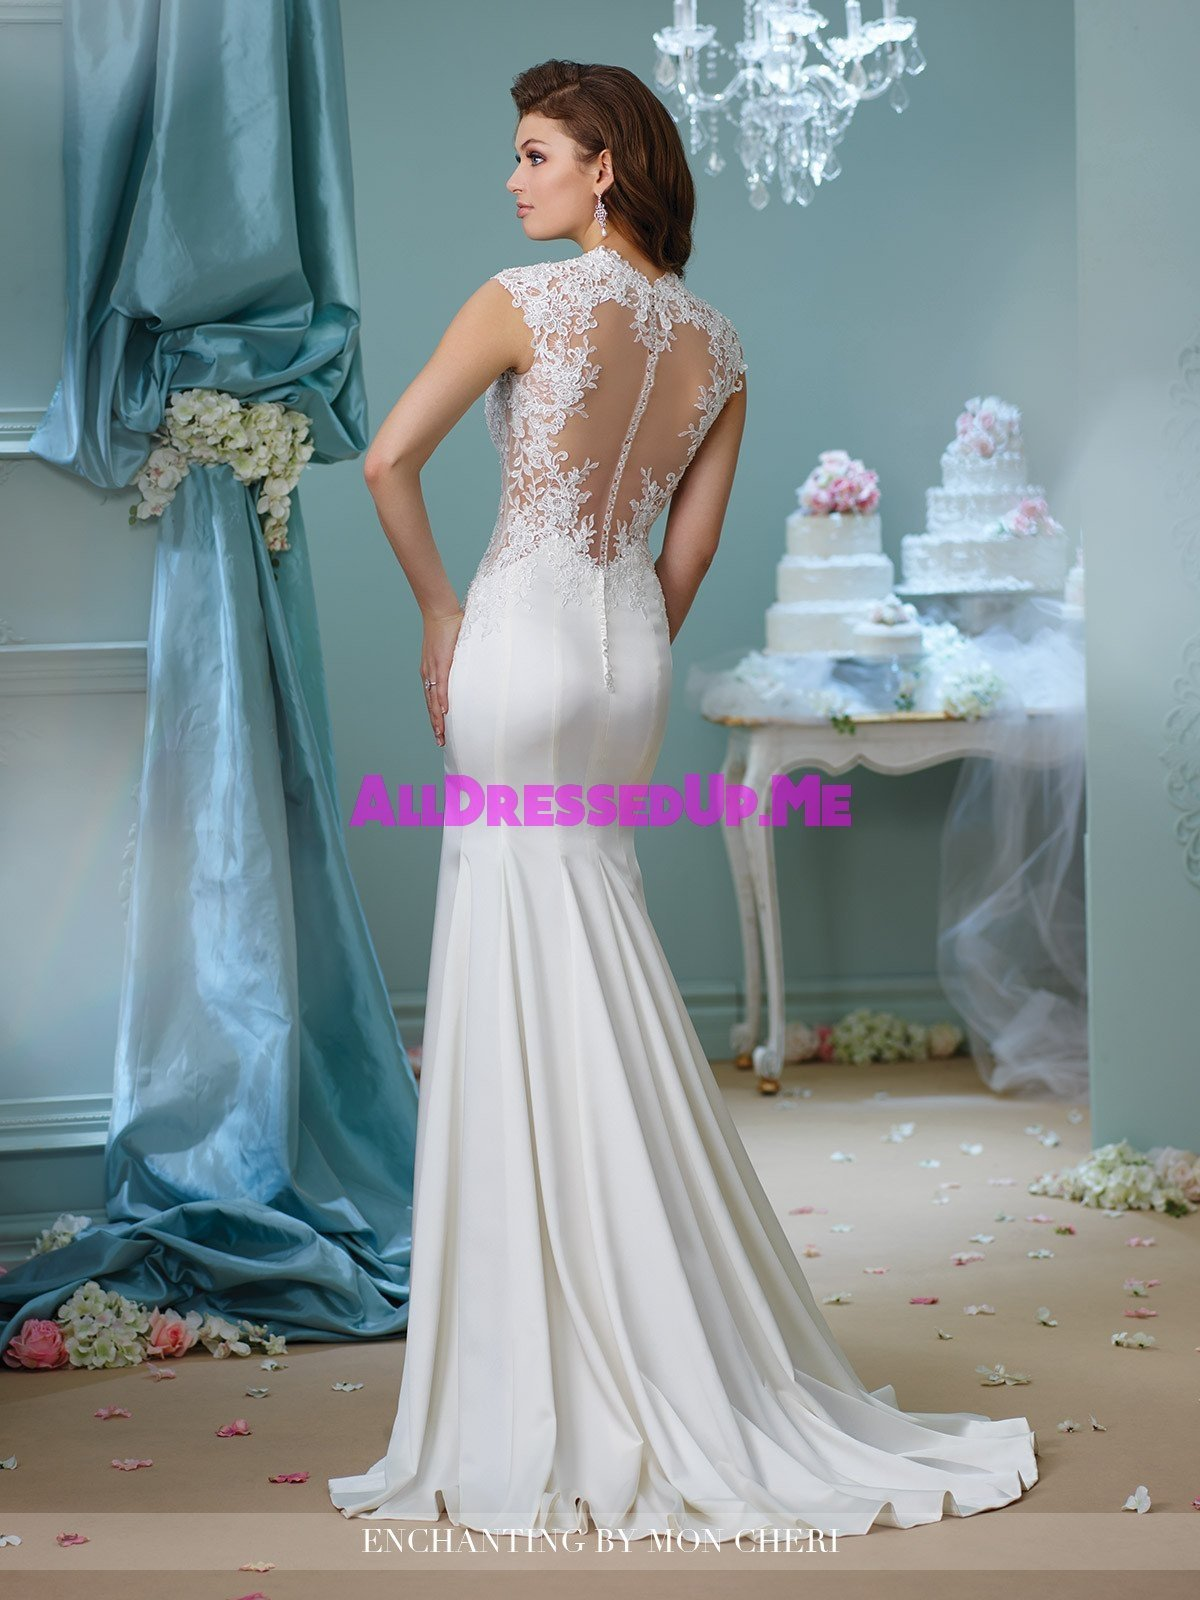 Enchanting 216158 all dressed up bridal gown all for Wedding dresses chattanooga tn